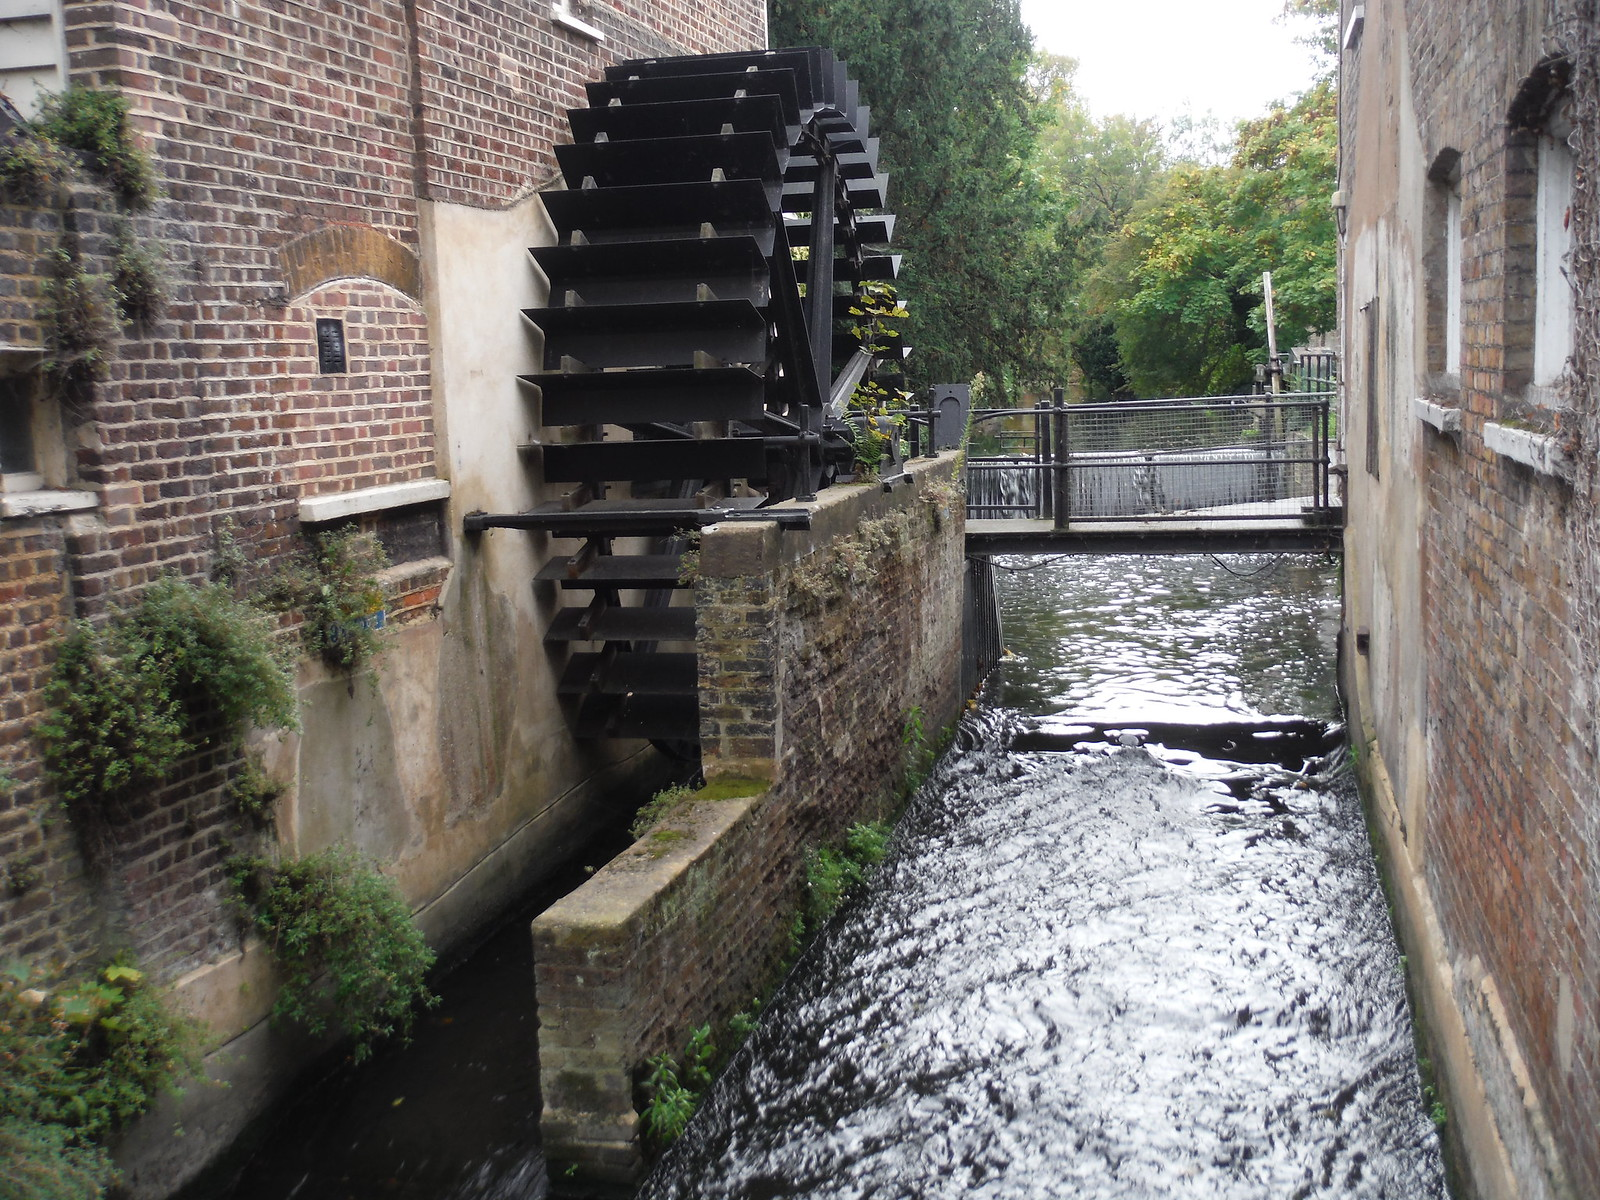 Waterwheel on River Wandle, Snuff Mill Morden Hall Park SWC Walk Short 13 - Morden Hall Park and Merton Abbey Mills